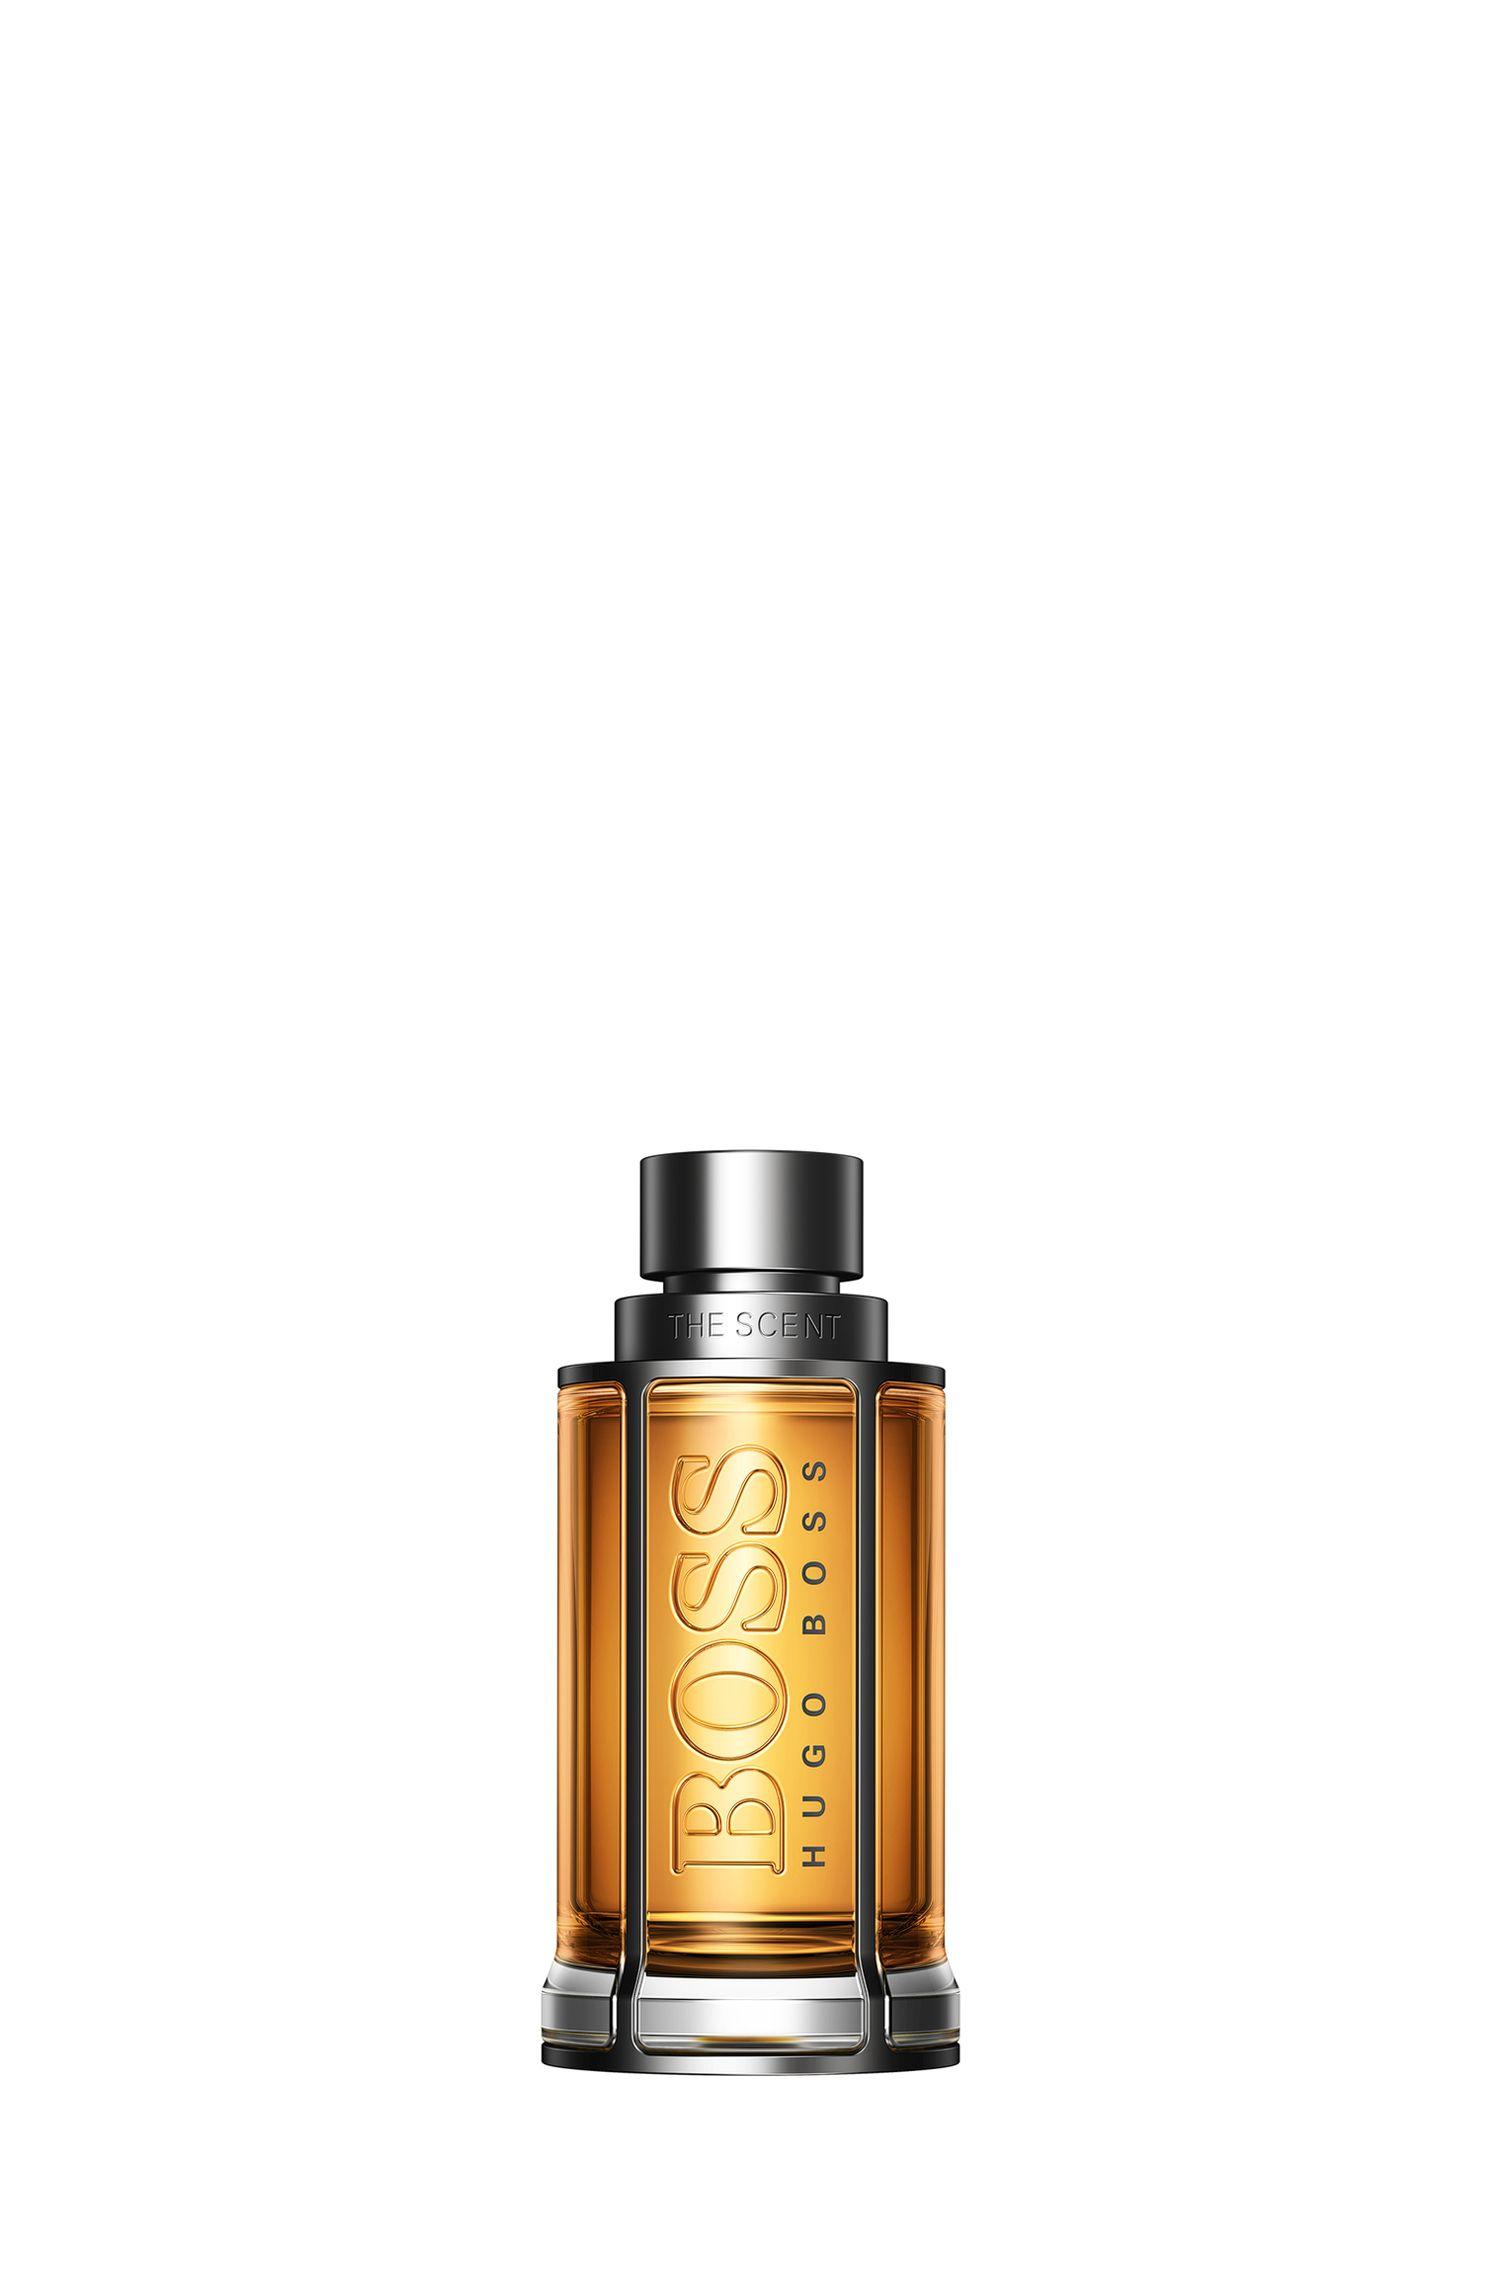 'BOSS The Scent' Eau de Toilette 50 ml